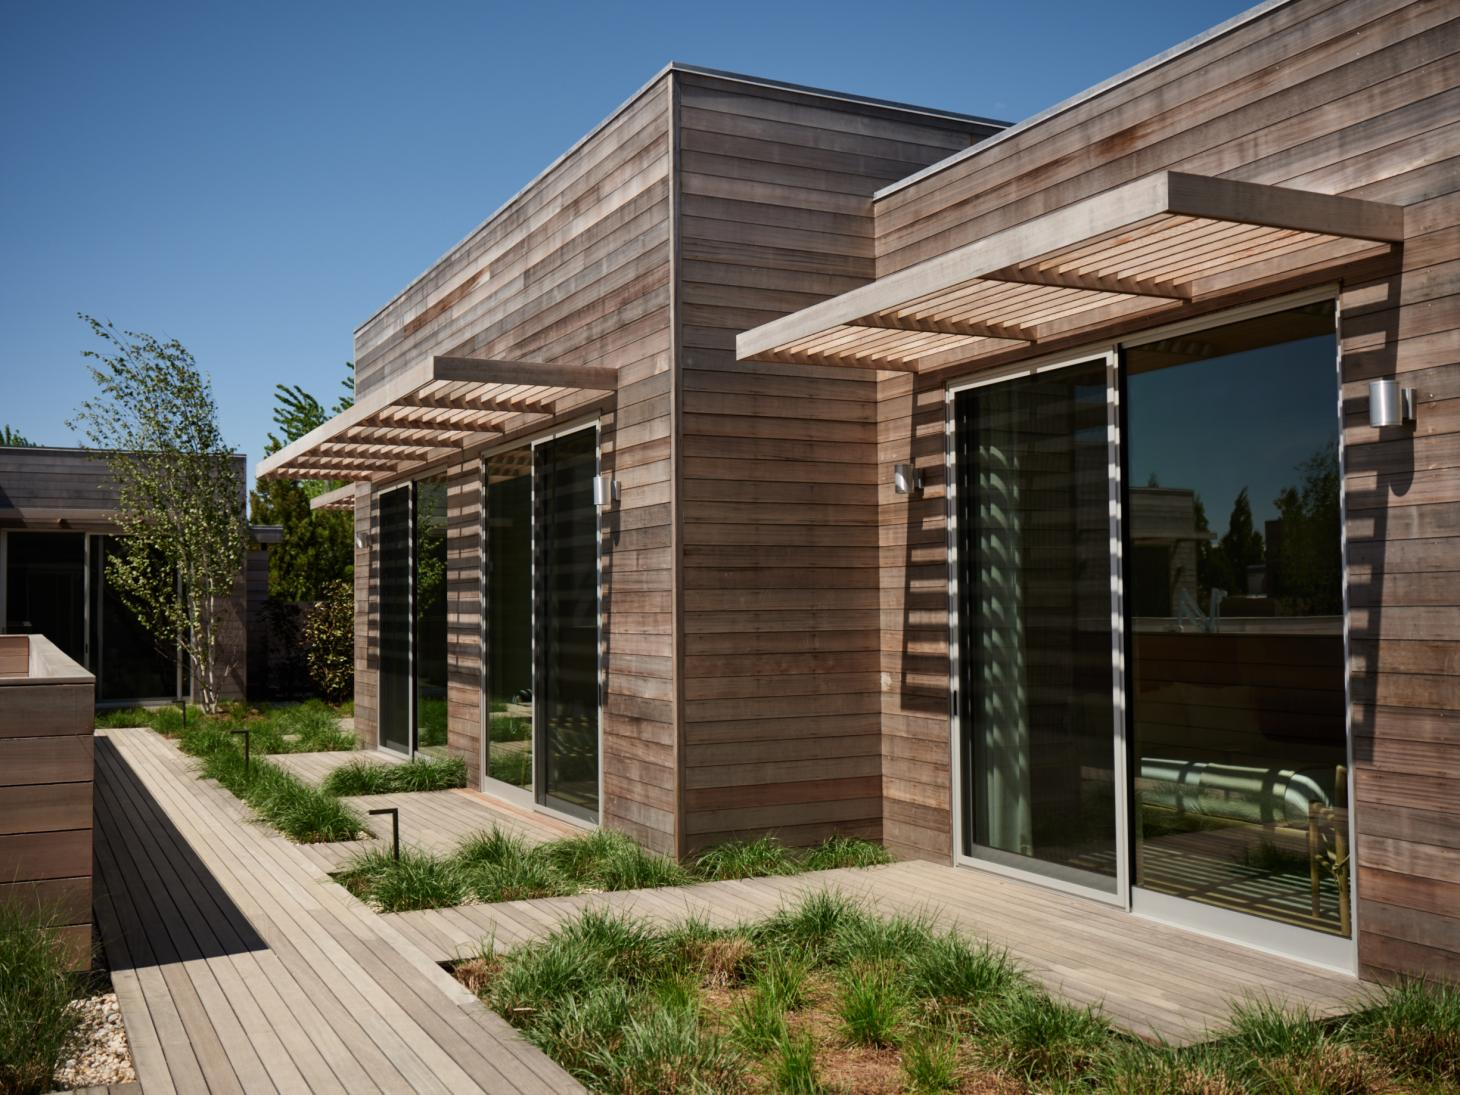 Wooden exterior of Shou Sugi Ban House in the Hamptons New York